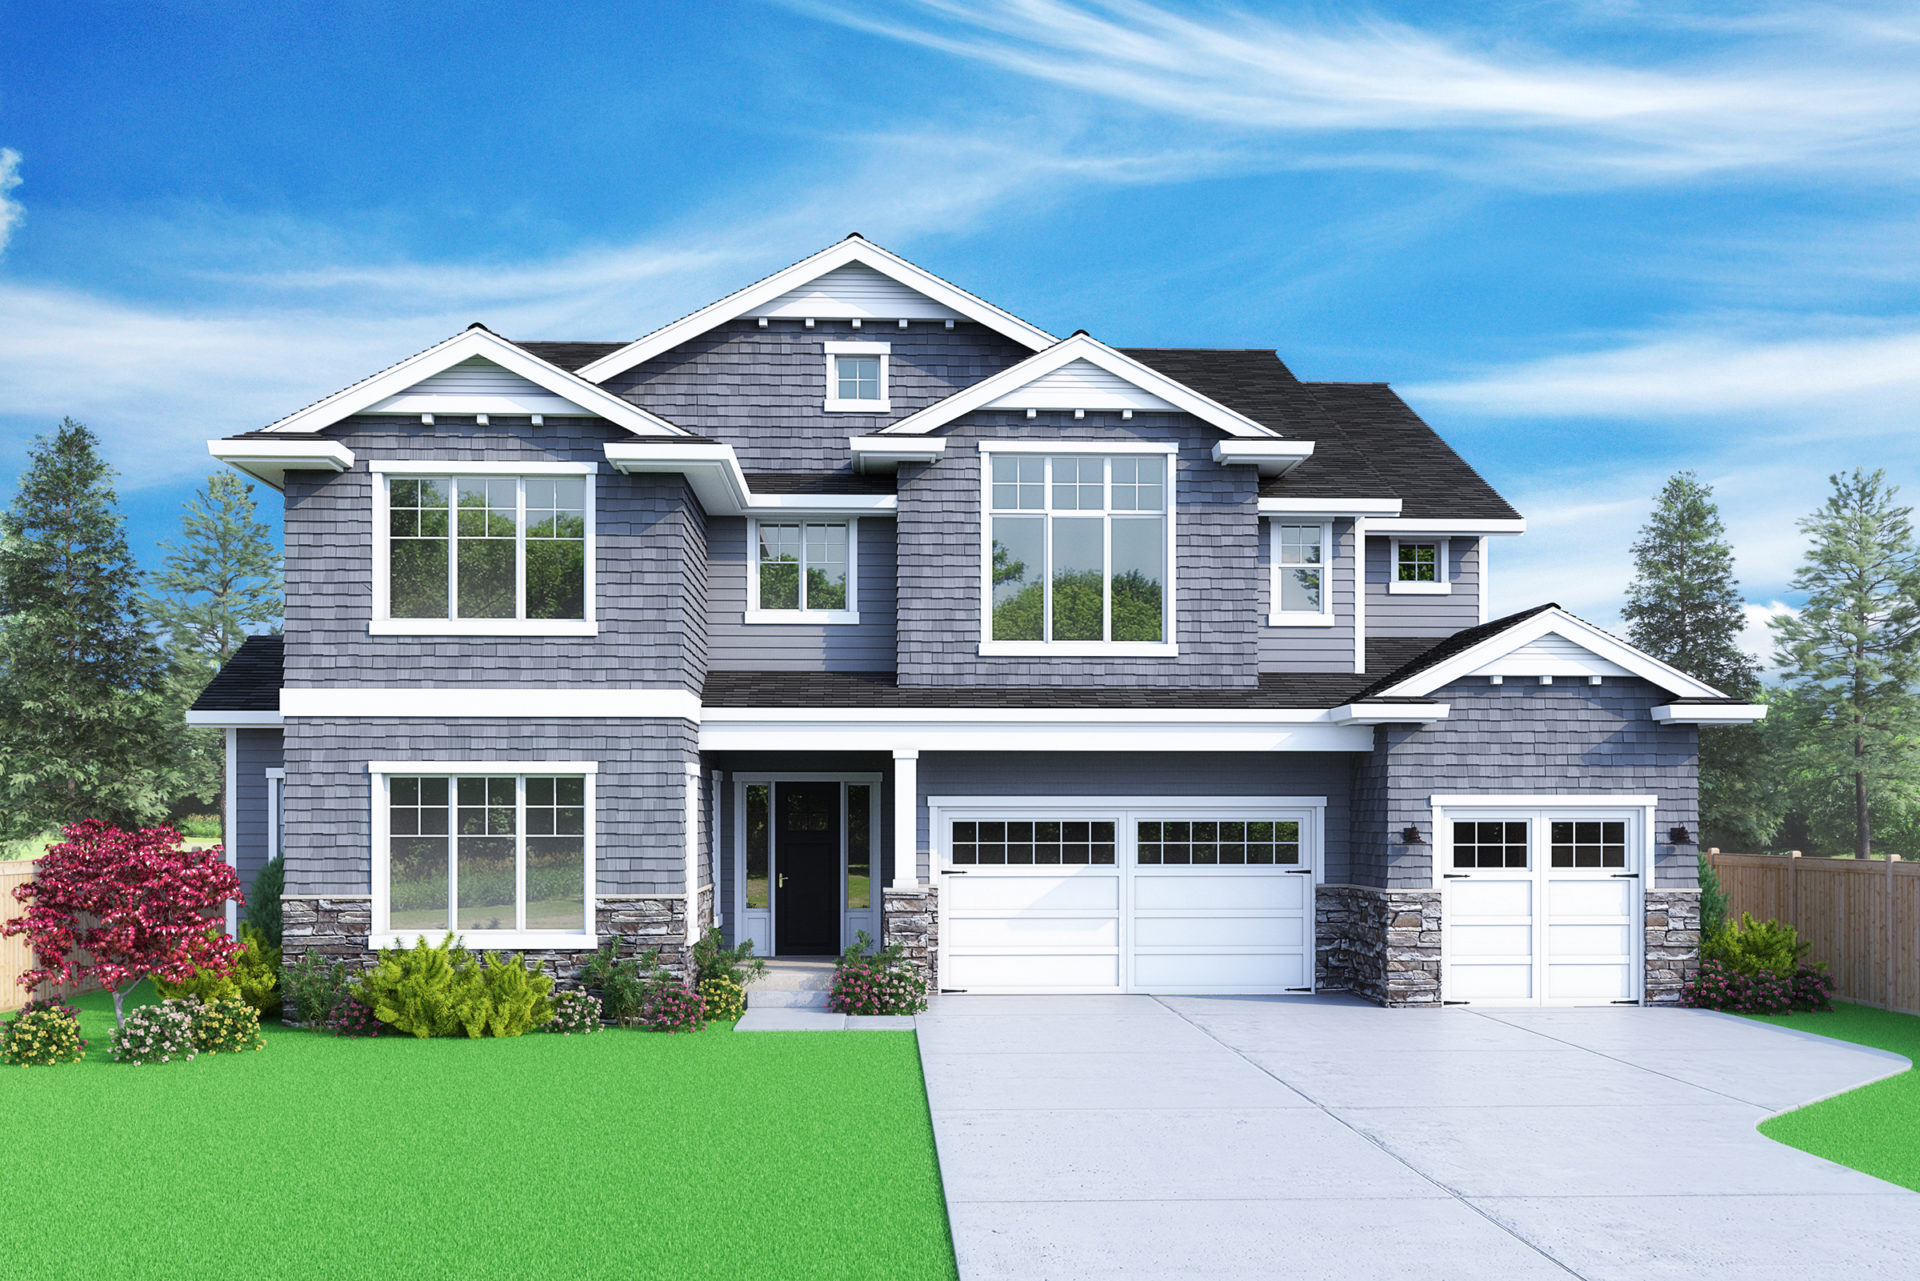 View our new luxury home construction on 5239 117th Ave SE, in Bellevue, WA from MN Custom Homes